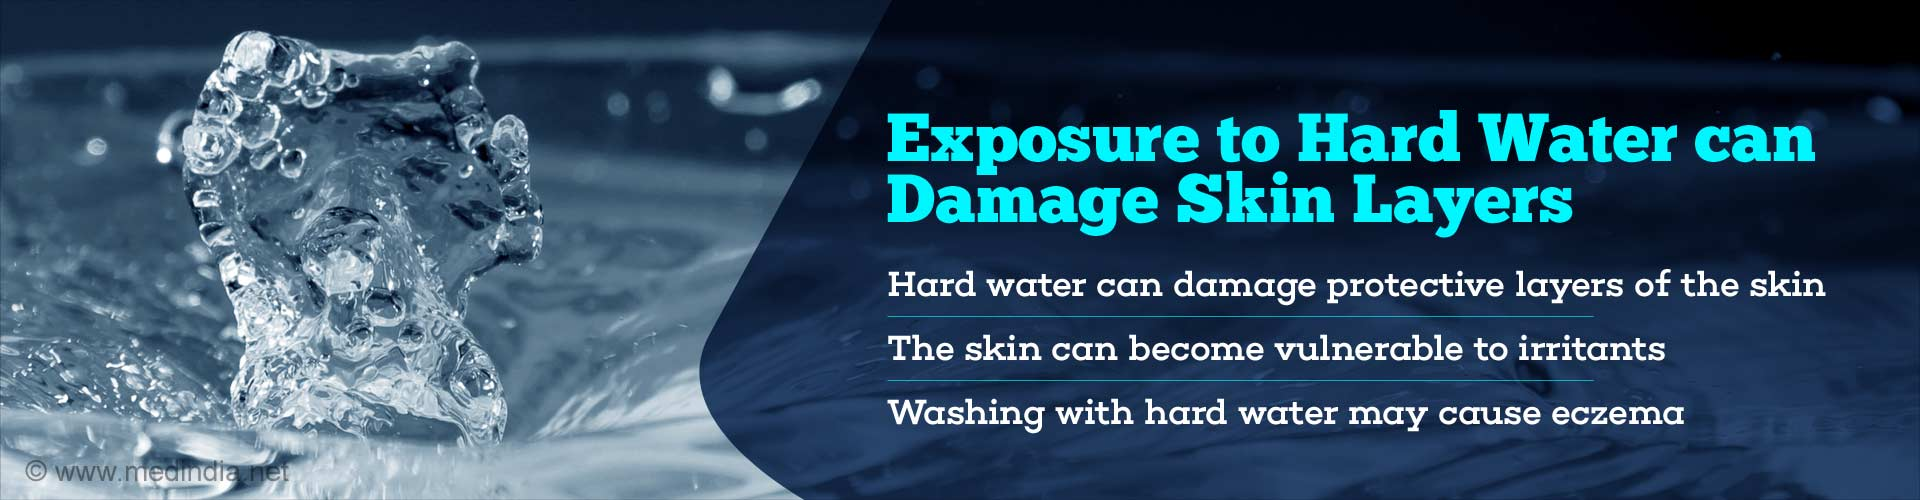 Exposure to hard water can damage skin layers - Hard water can damage protective layers of the skin - The skin can become vulnerable to irritants - Washing with hard water may cause eczema